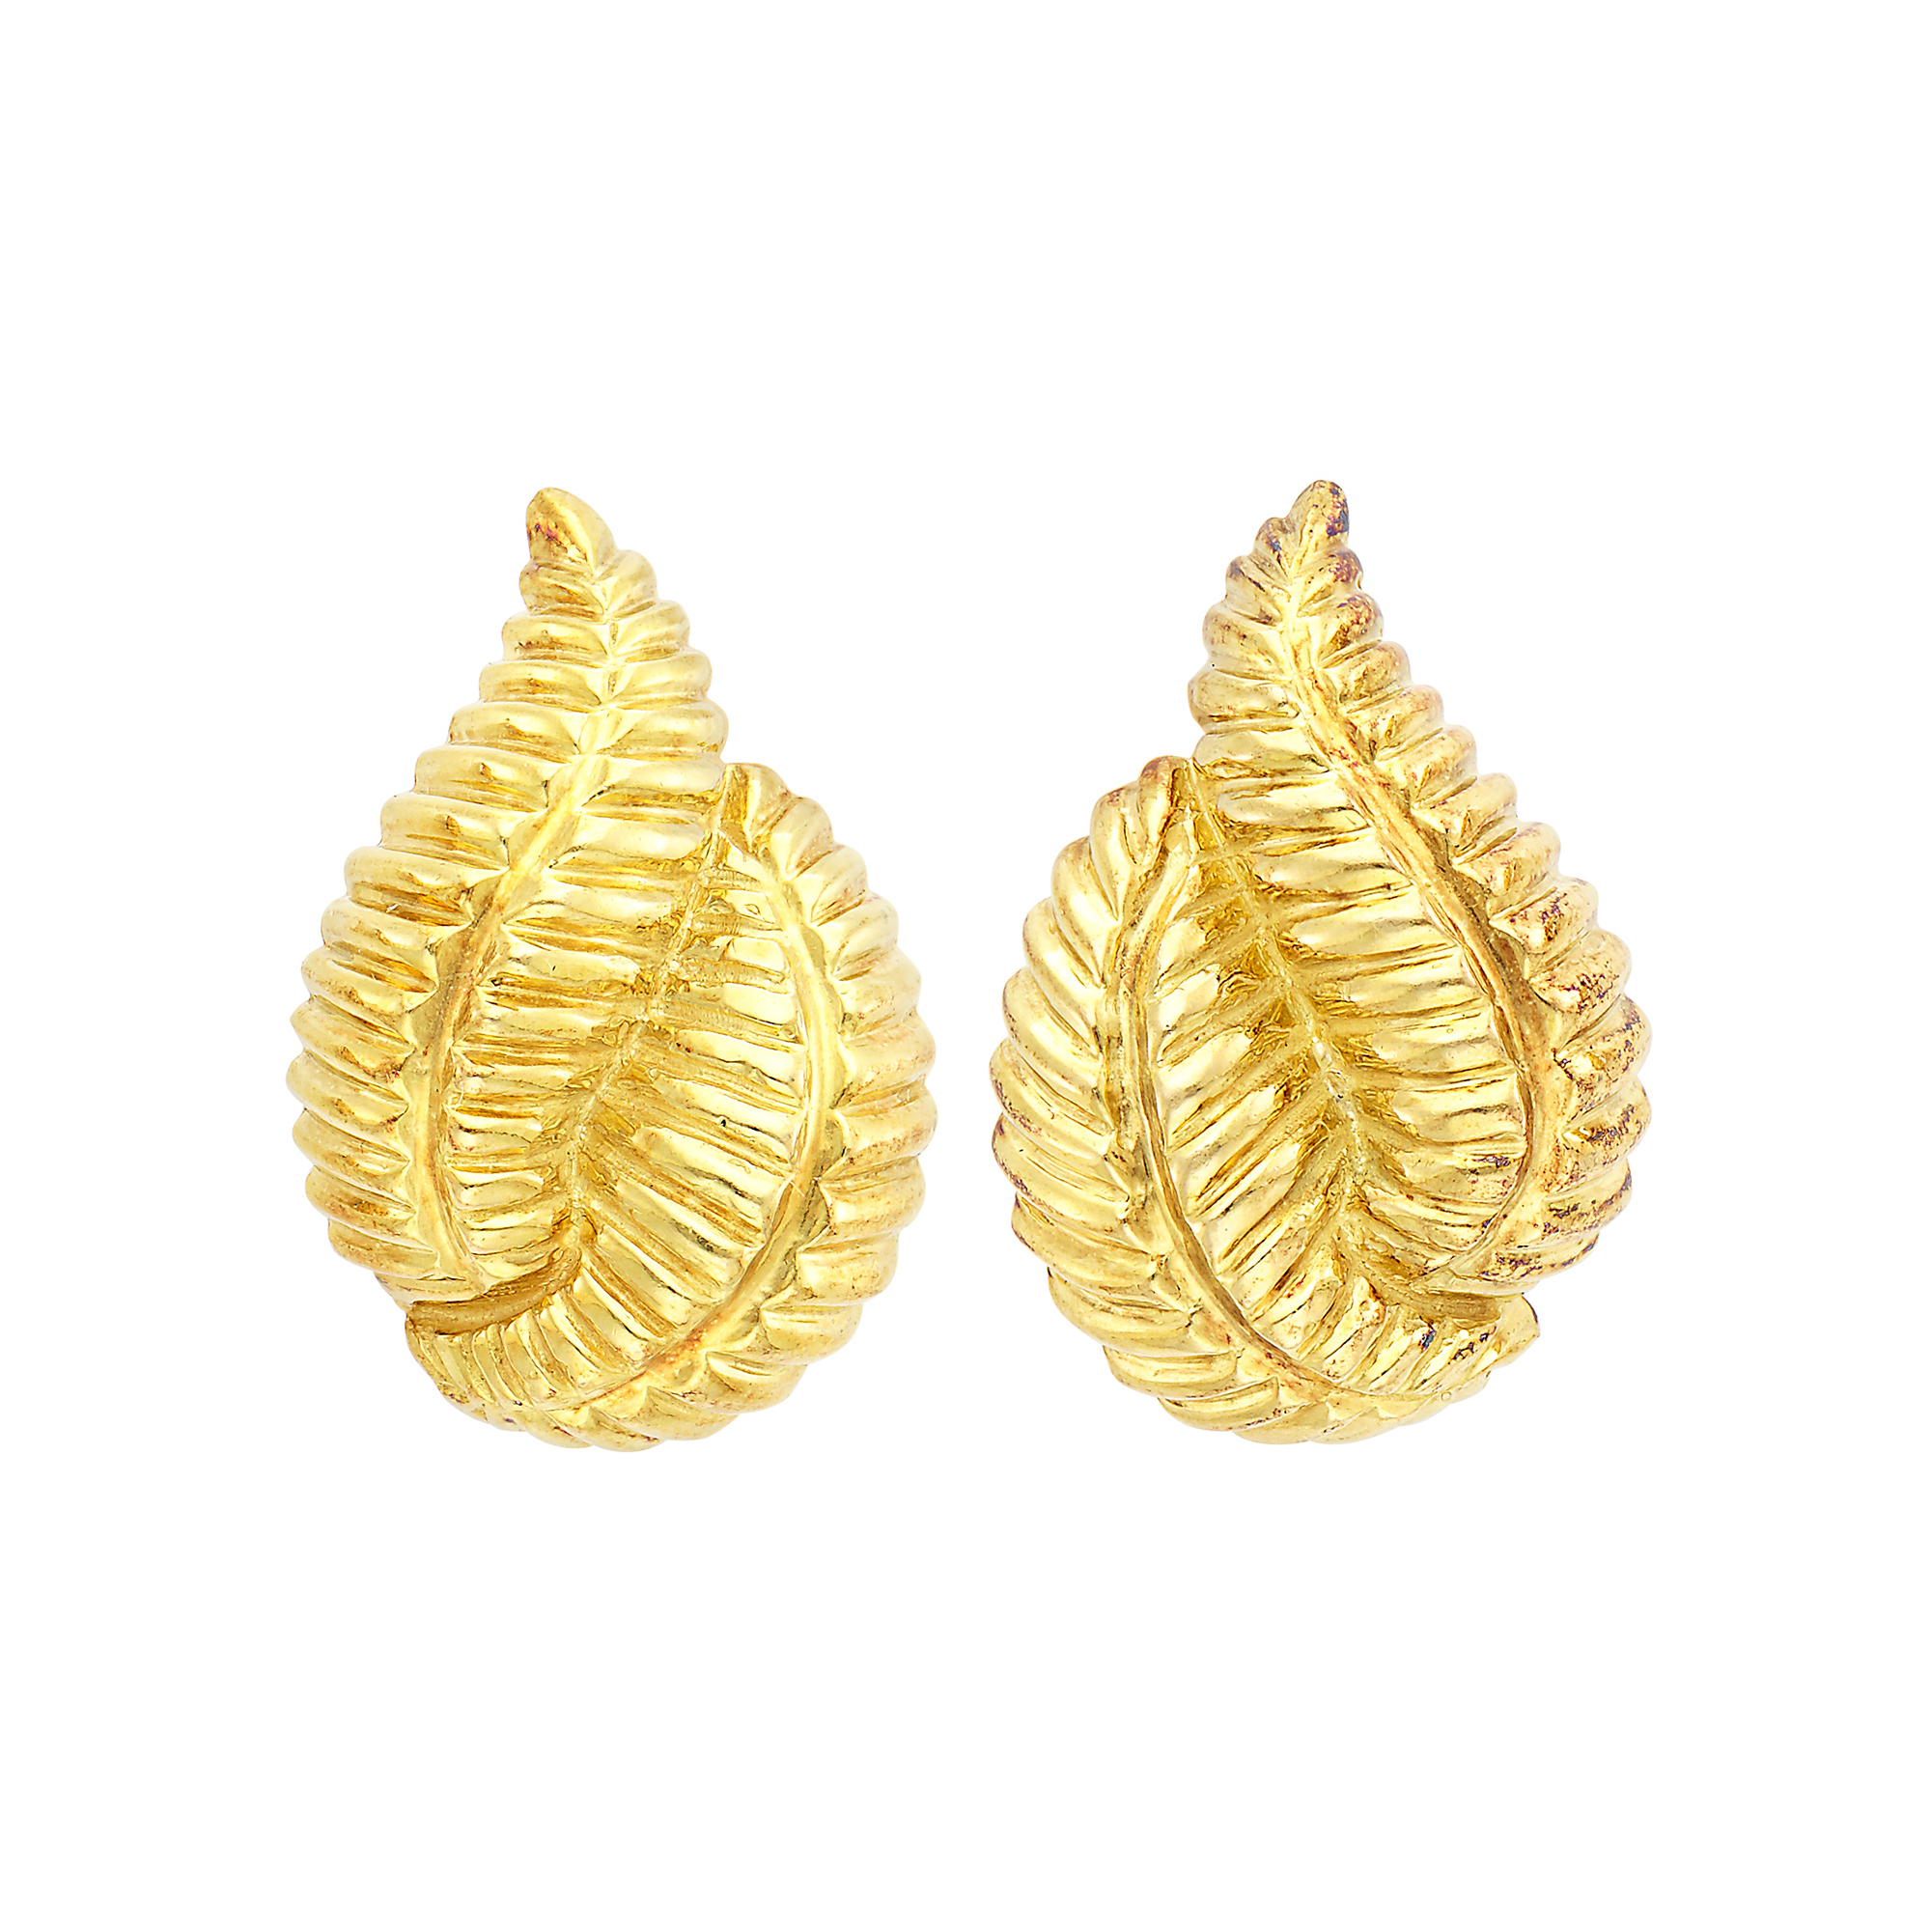 Lot image - Pair of Gold Leaf Earclips, David Webb